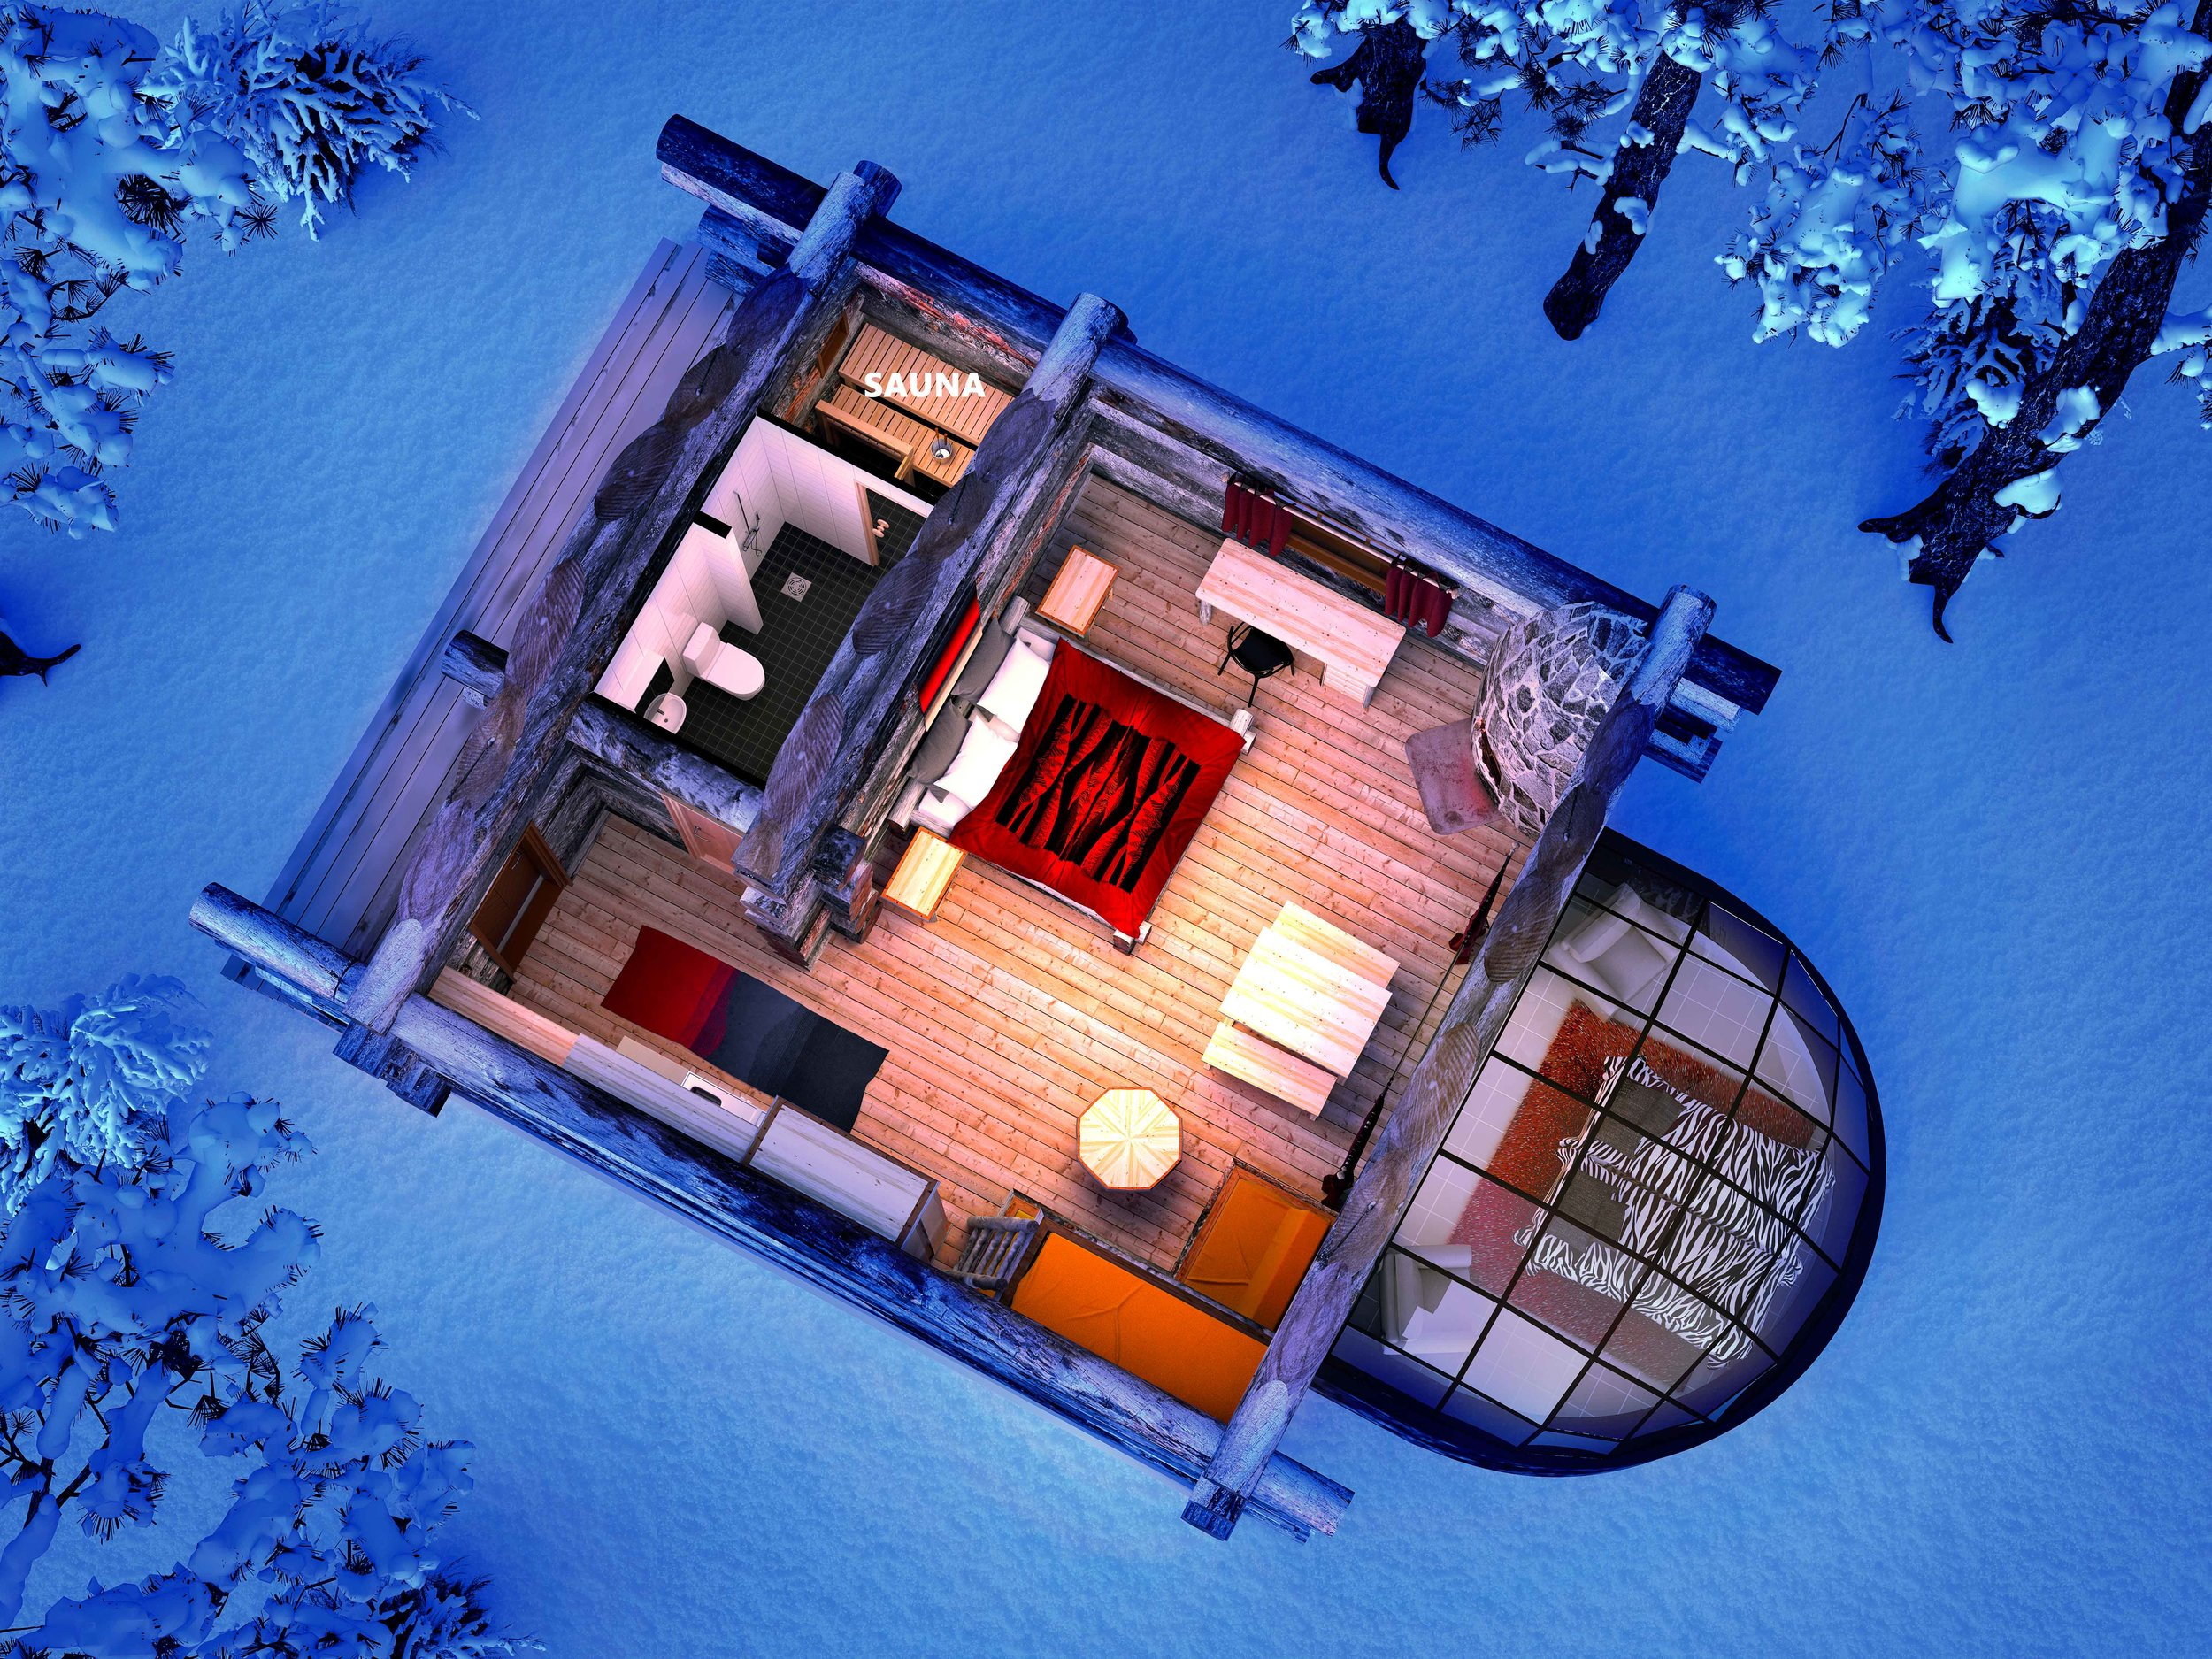 Kakslauttanen Kelo-Glass_Igloo from above